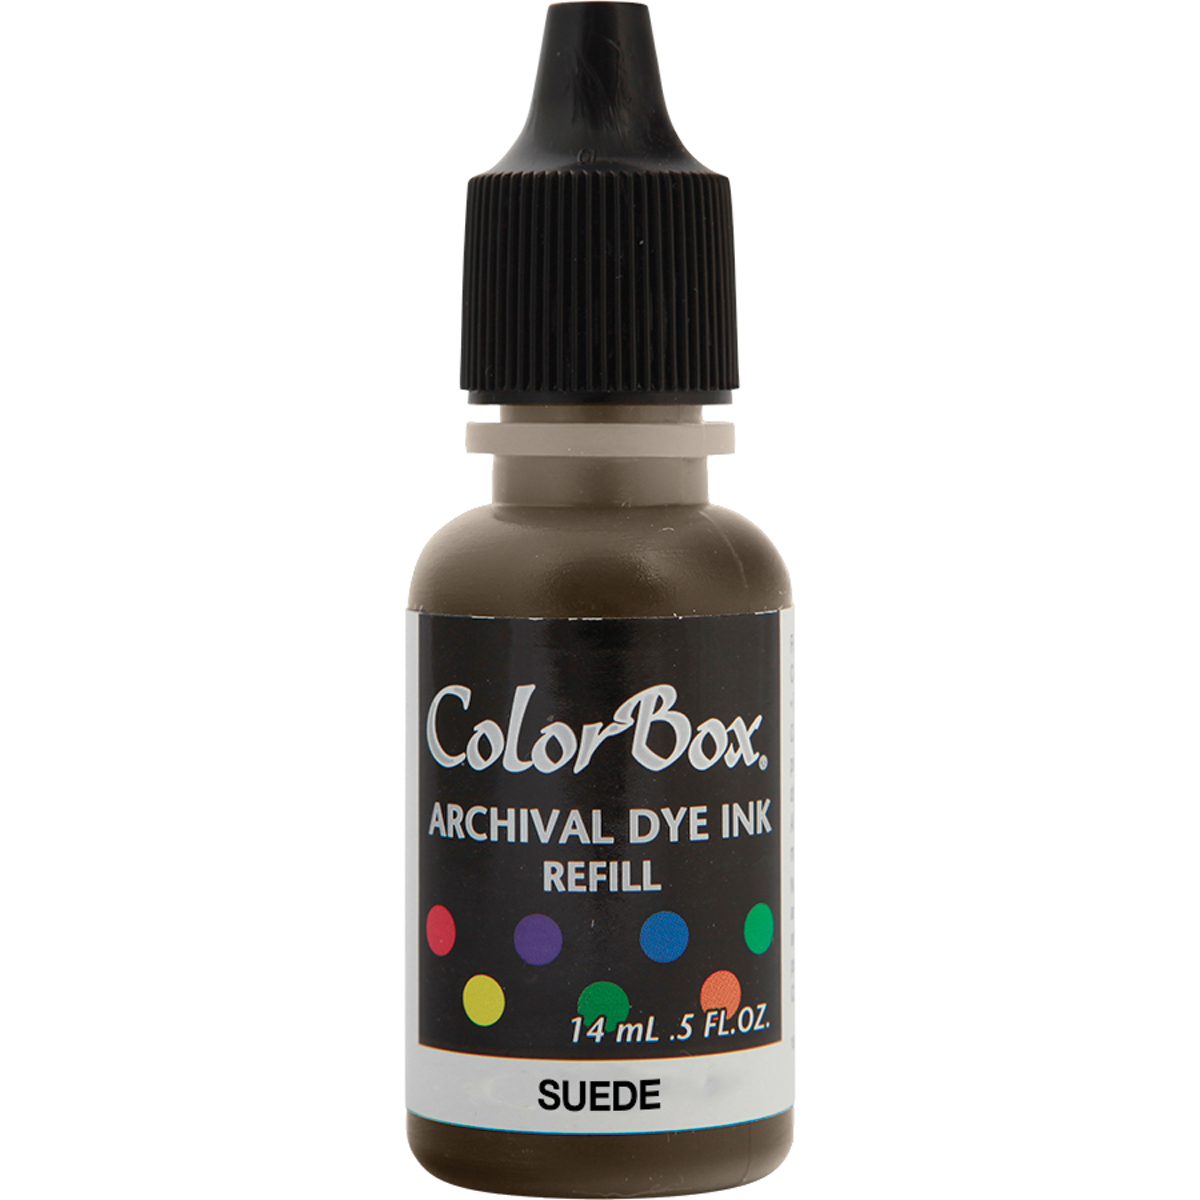 ColorBox Archival Dye Ink Refill